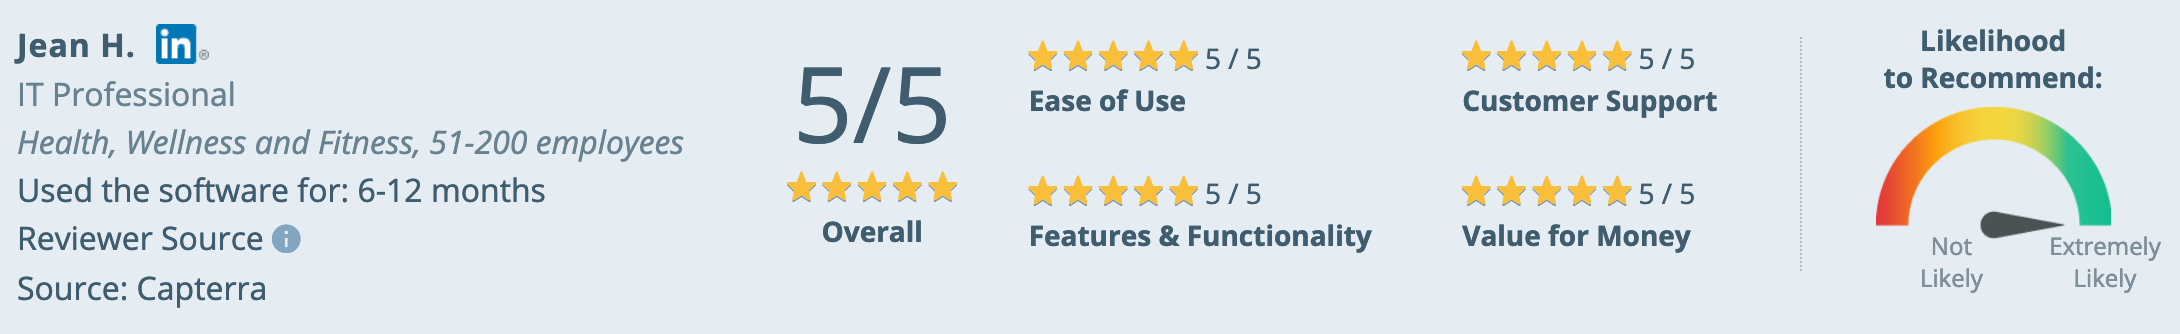 Nextiva Reviews: Capterra Review 5